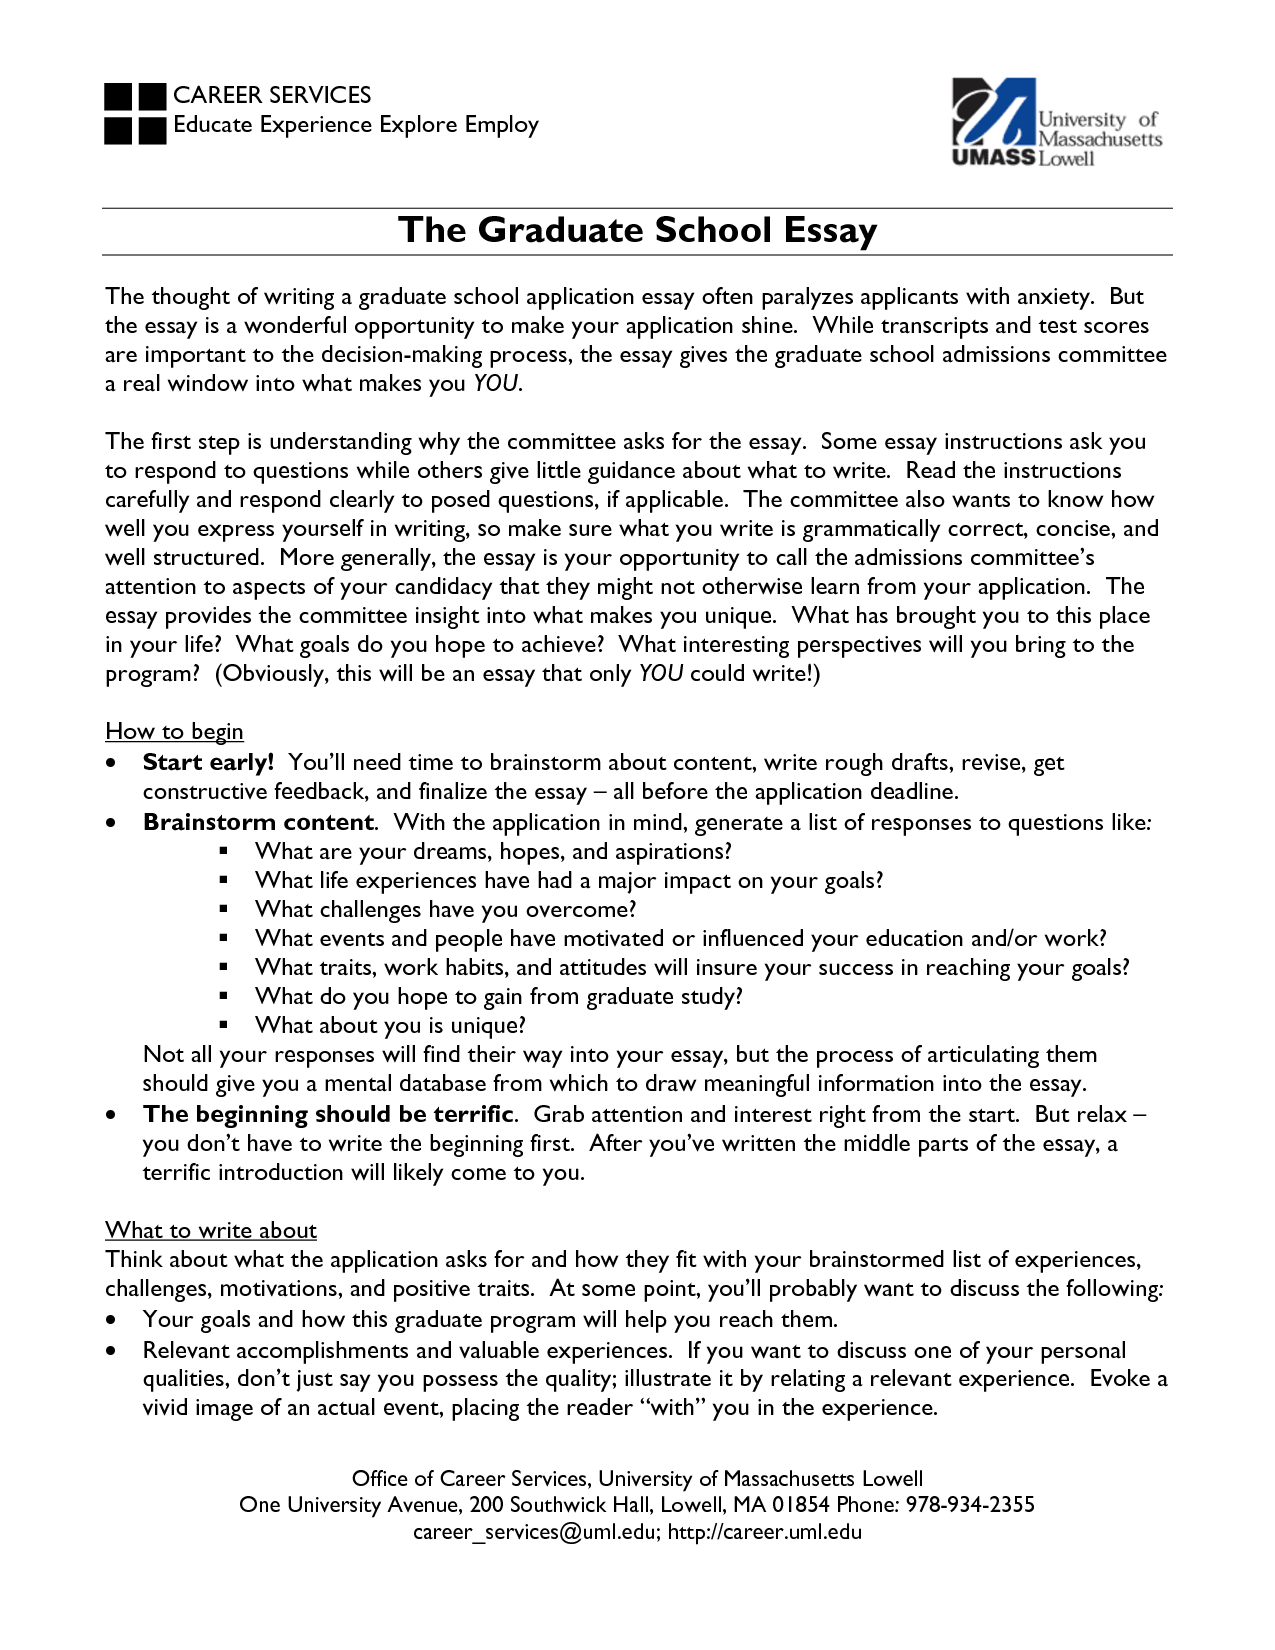 graduate school papers for sale Paper masters services undergraduate research papers - research papers, essays, book reports, term papers and much more for undergraduate level college students graduate research papers - research papers, graduate level projects, capstone work, and any grad level writing assigment you have.